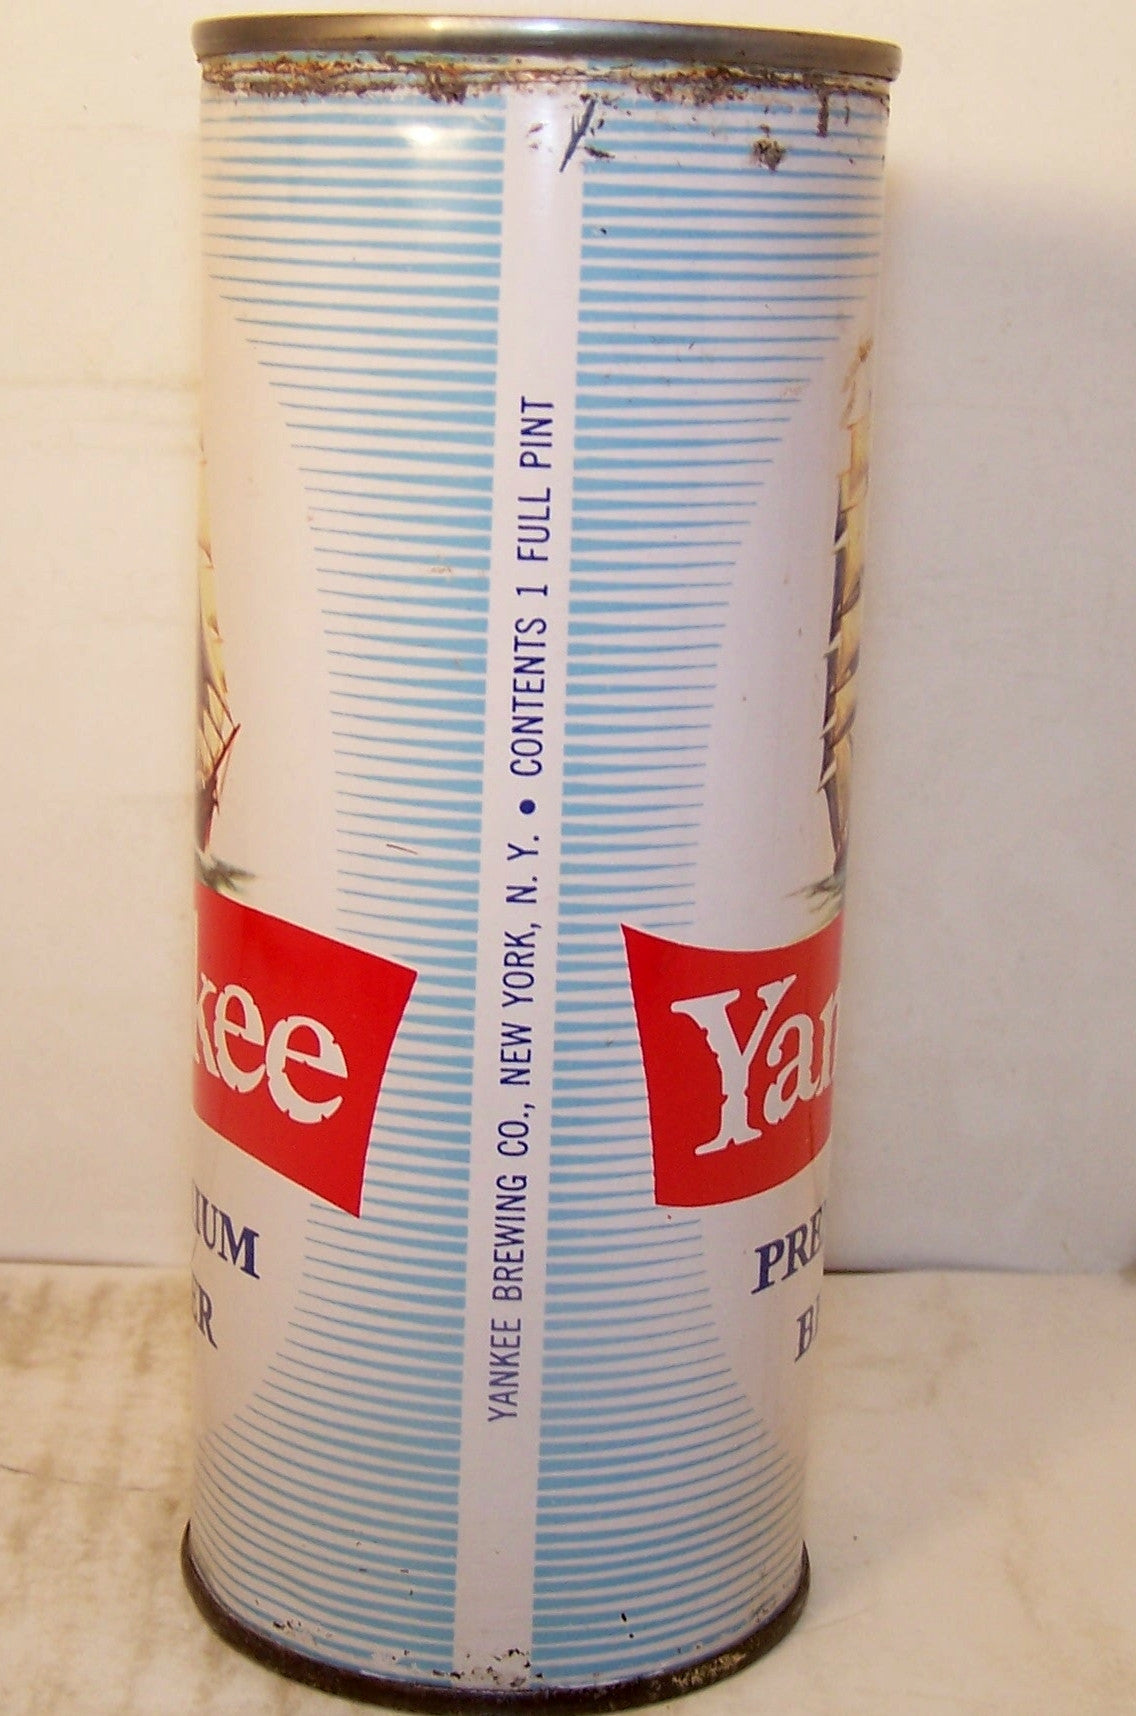 Yankee Premium Beer, USBC 236-16, Grade 1- sold on 10/10/15